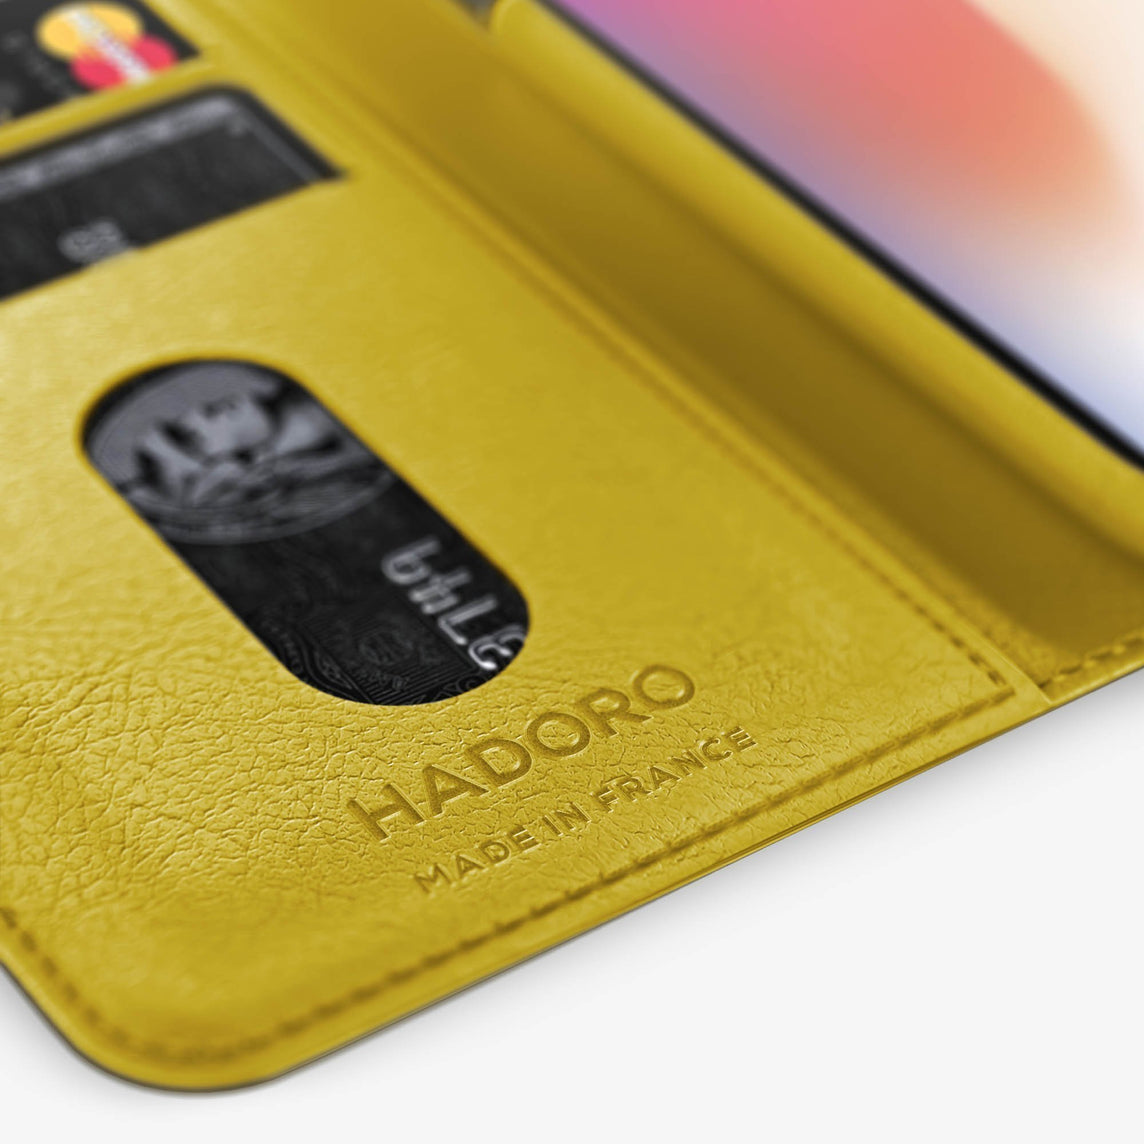 Yellow Alligator iPhone Folio Case for iPhone XS Max finishing black - Hadoro Luxury Cases